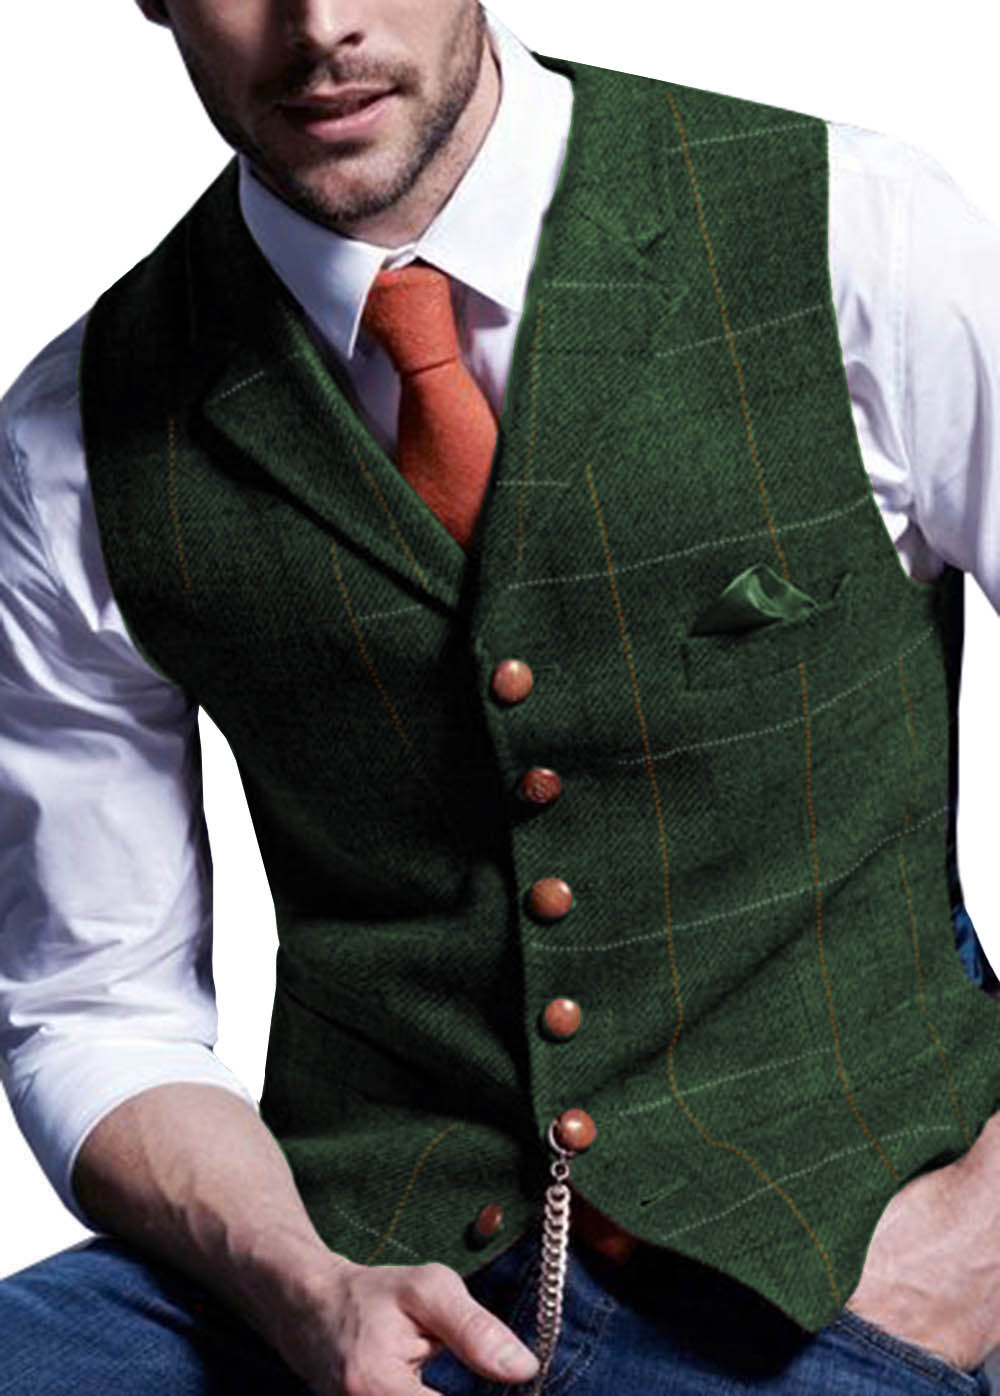 Mens Suit Vest Notched Plaid Wool Herringbone Tweed Waistcoat Casual Formal Business Groomman For Wedding Green/Black/Green/Grey